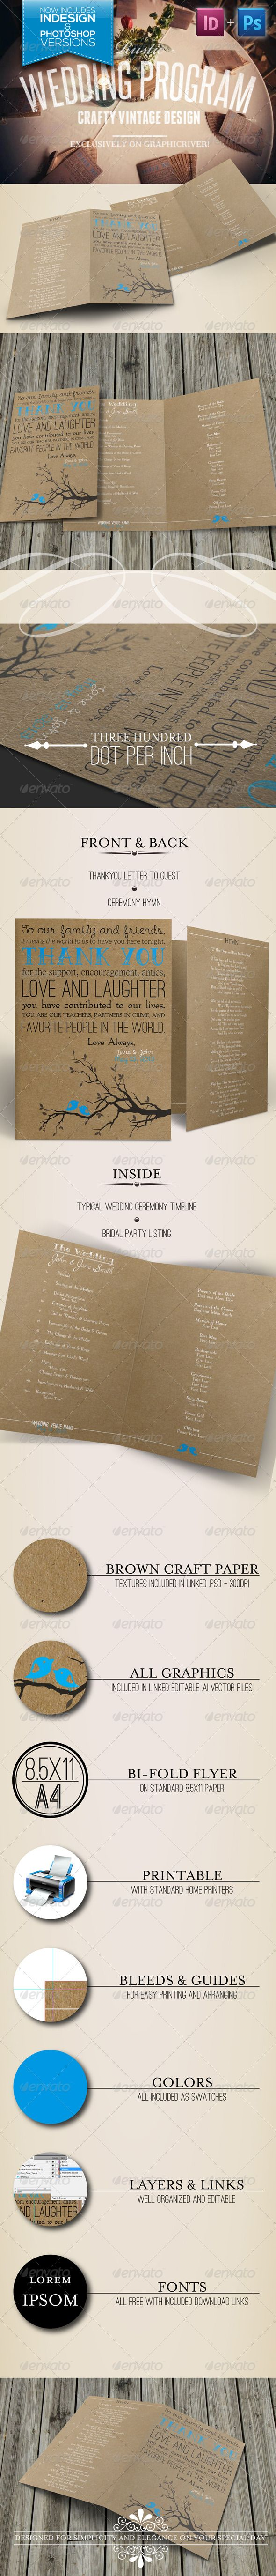 Rustic Wedding Program Template I Designed Only Bucks Comes - Photoshop wedding program template